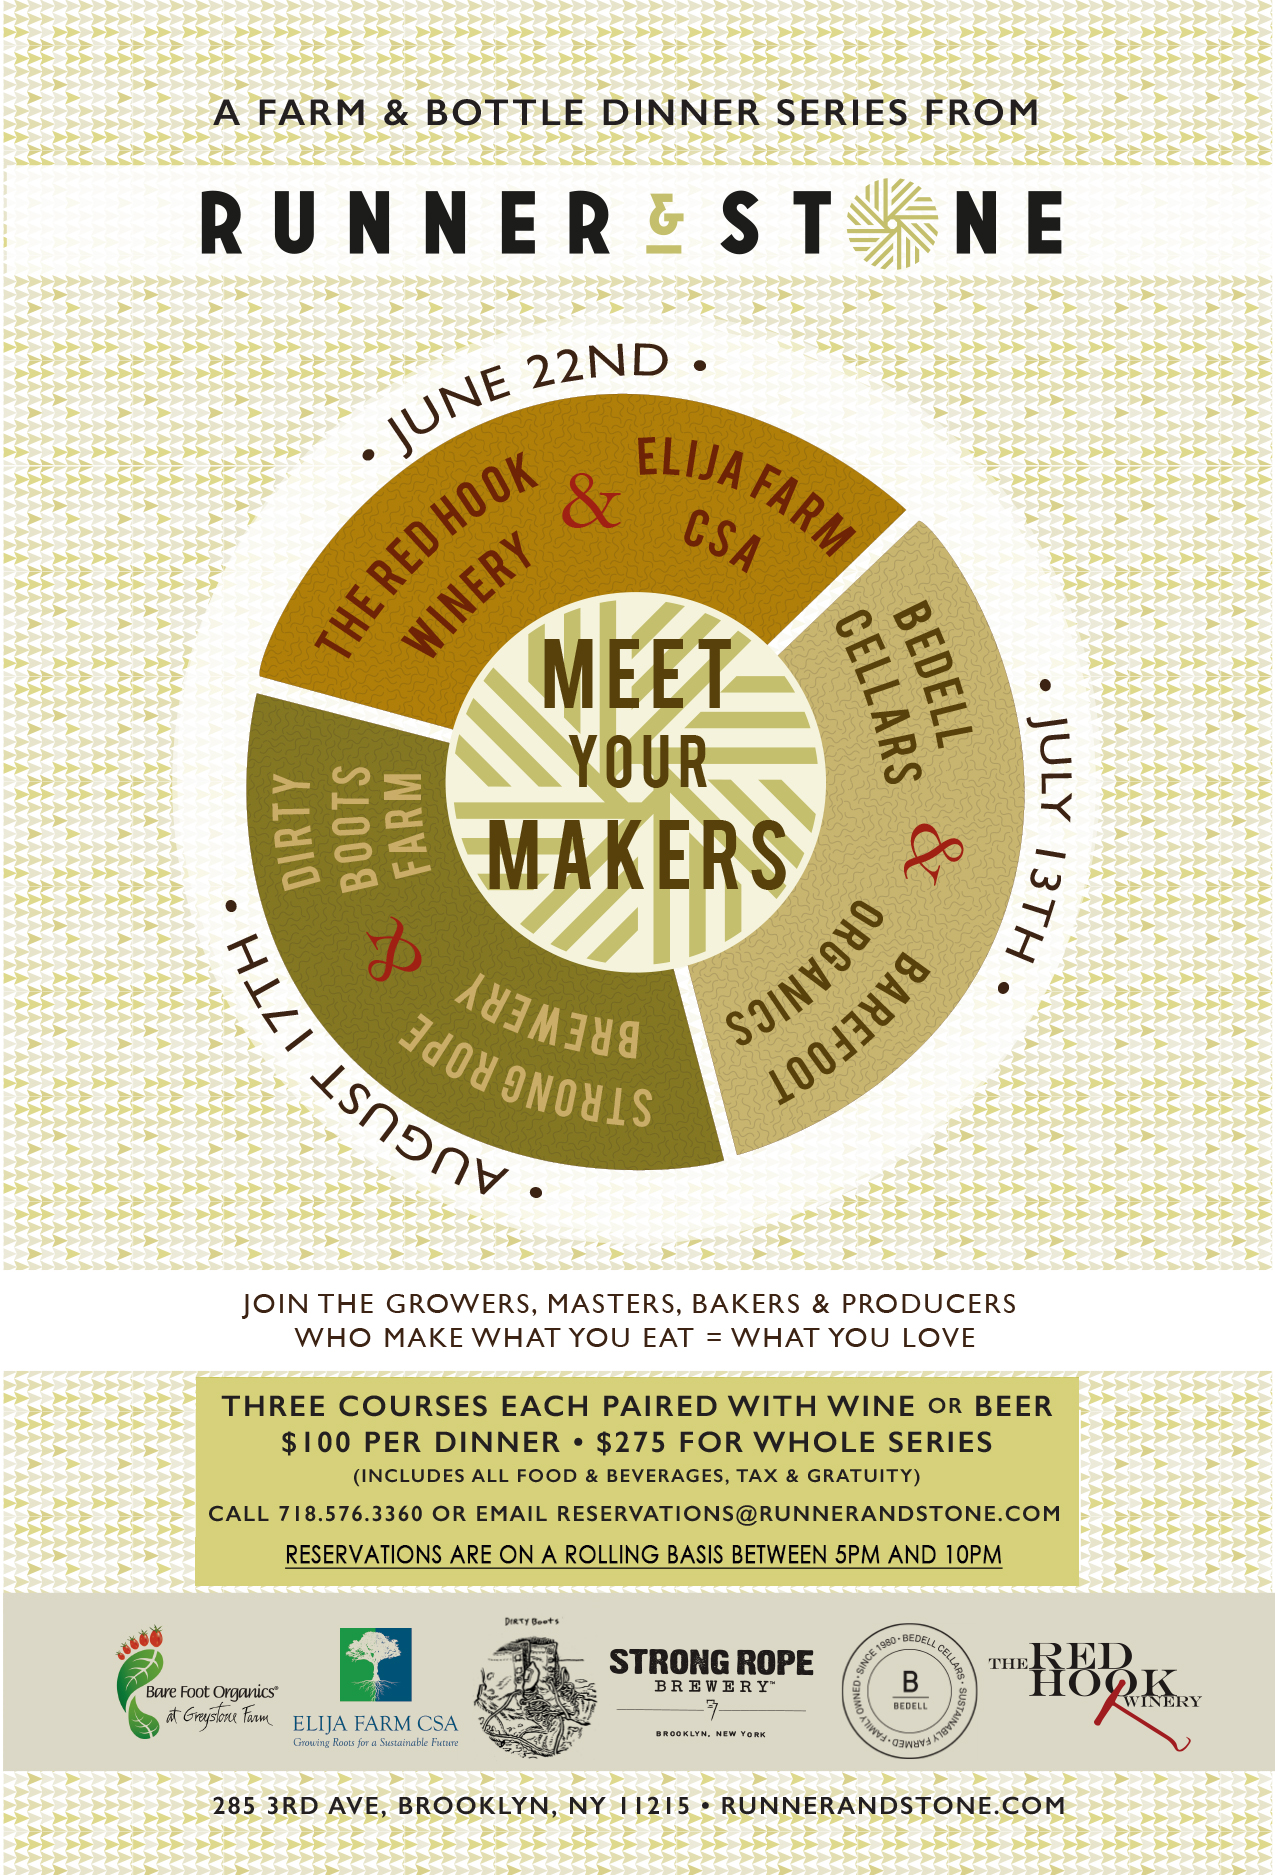 runner & stone's 'meet your makers' series - featuring elija farm